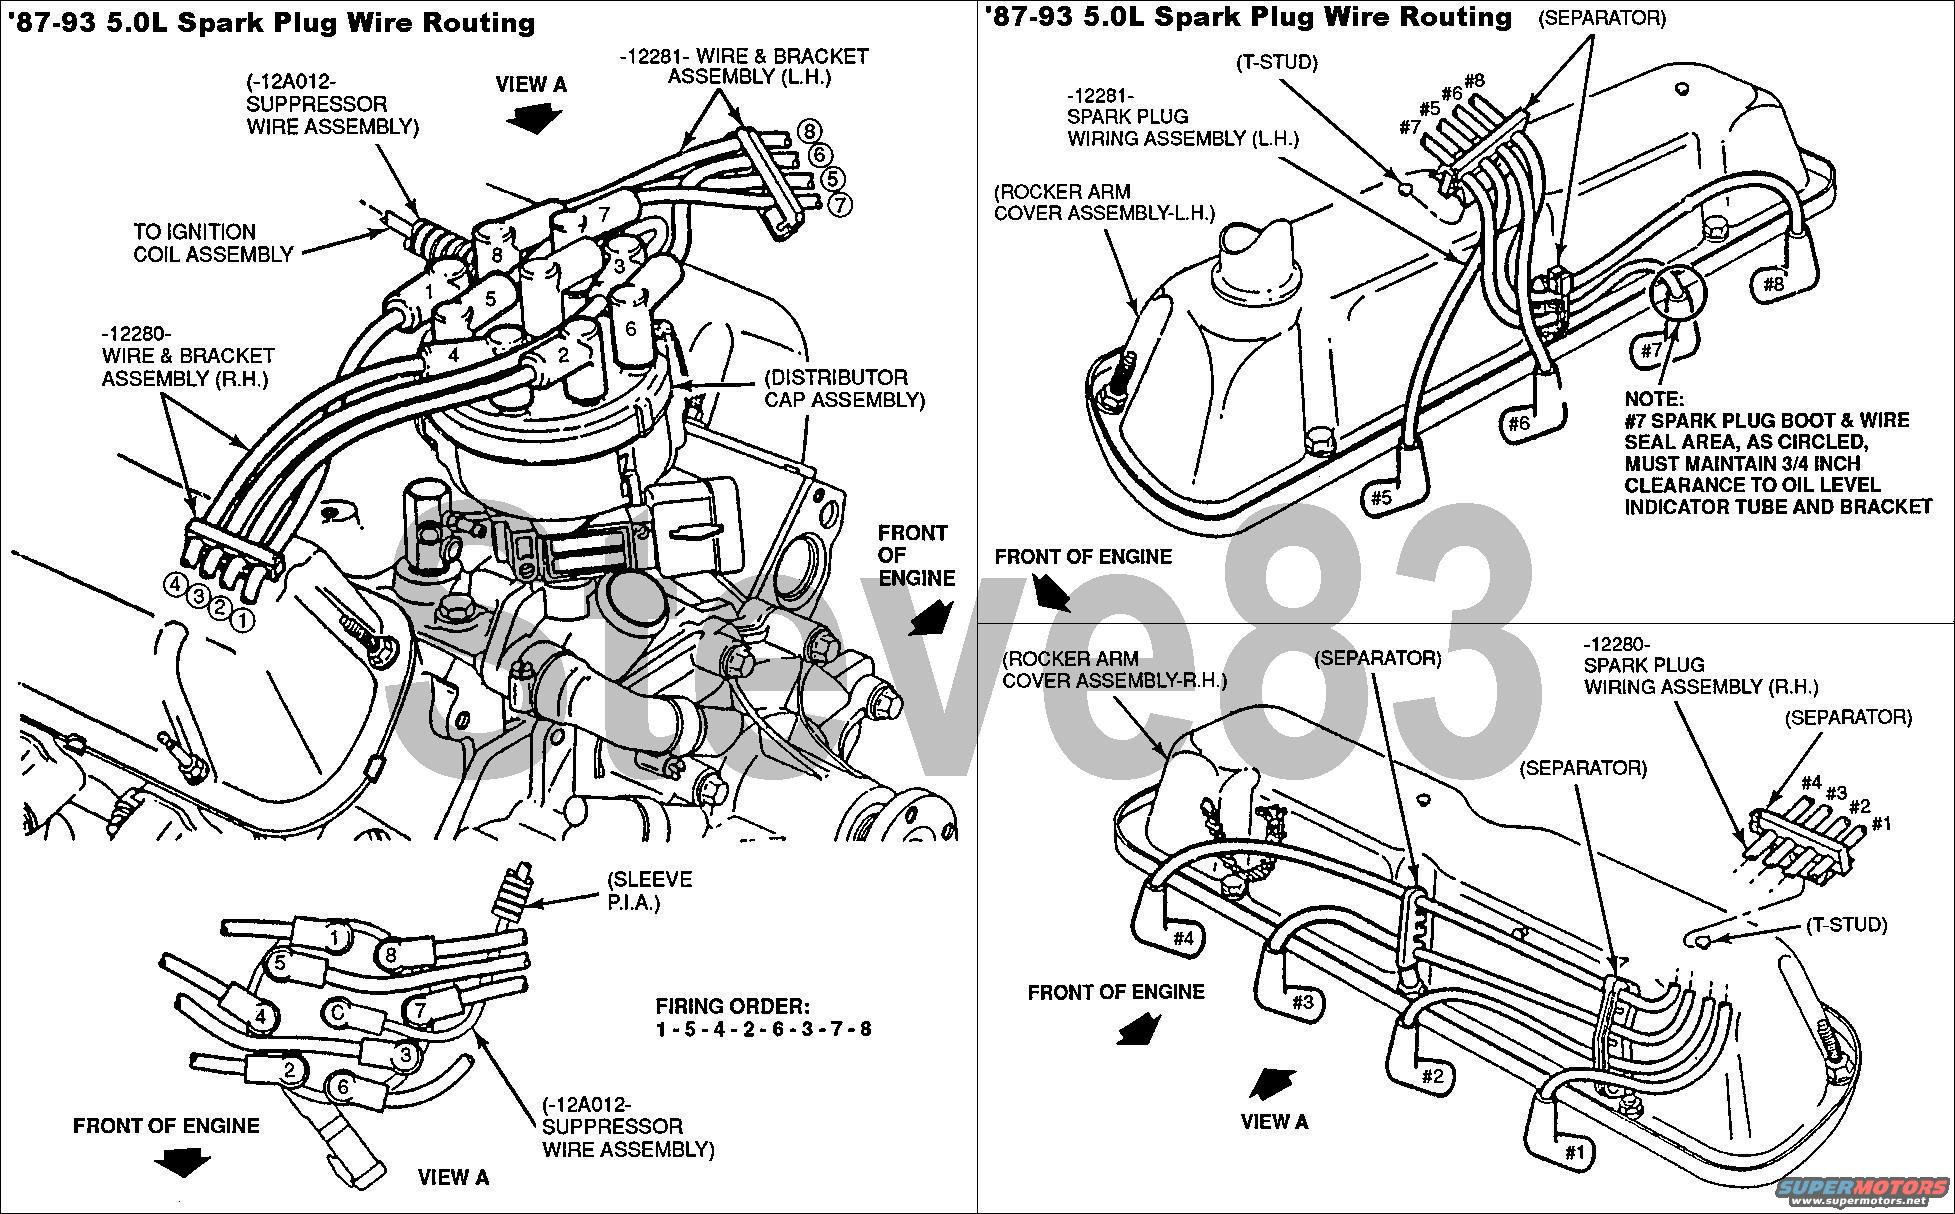 470415_1 on Distributor Wire Diagram 1994 Toyota Corolla